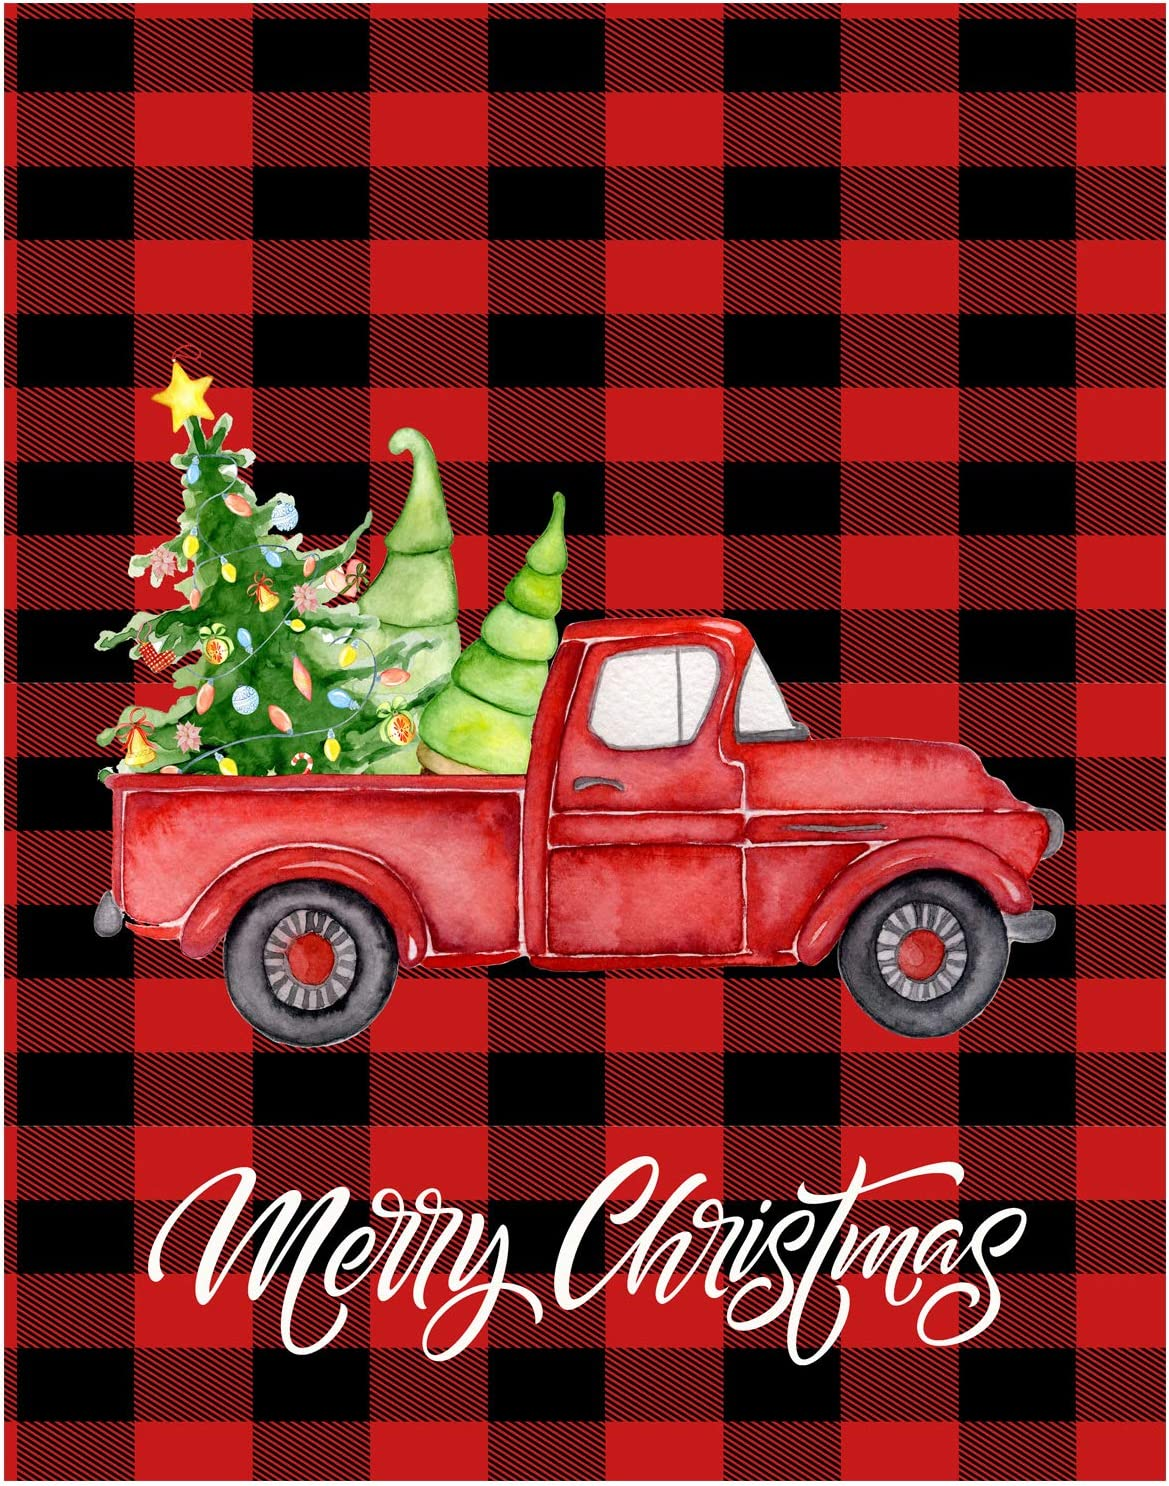 "Wamika Christmas Red Truck Double Sided Garden Yard Flag 12"" x 18"", Red Black Buffalo Check Plaid Xmas New Year Decorative Garden Flag Banner for Outdoor Home Decor Party"